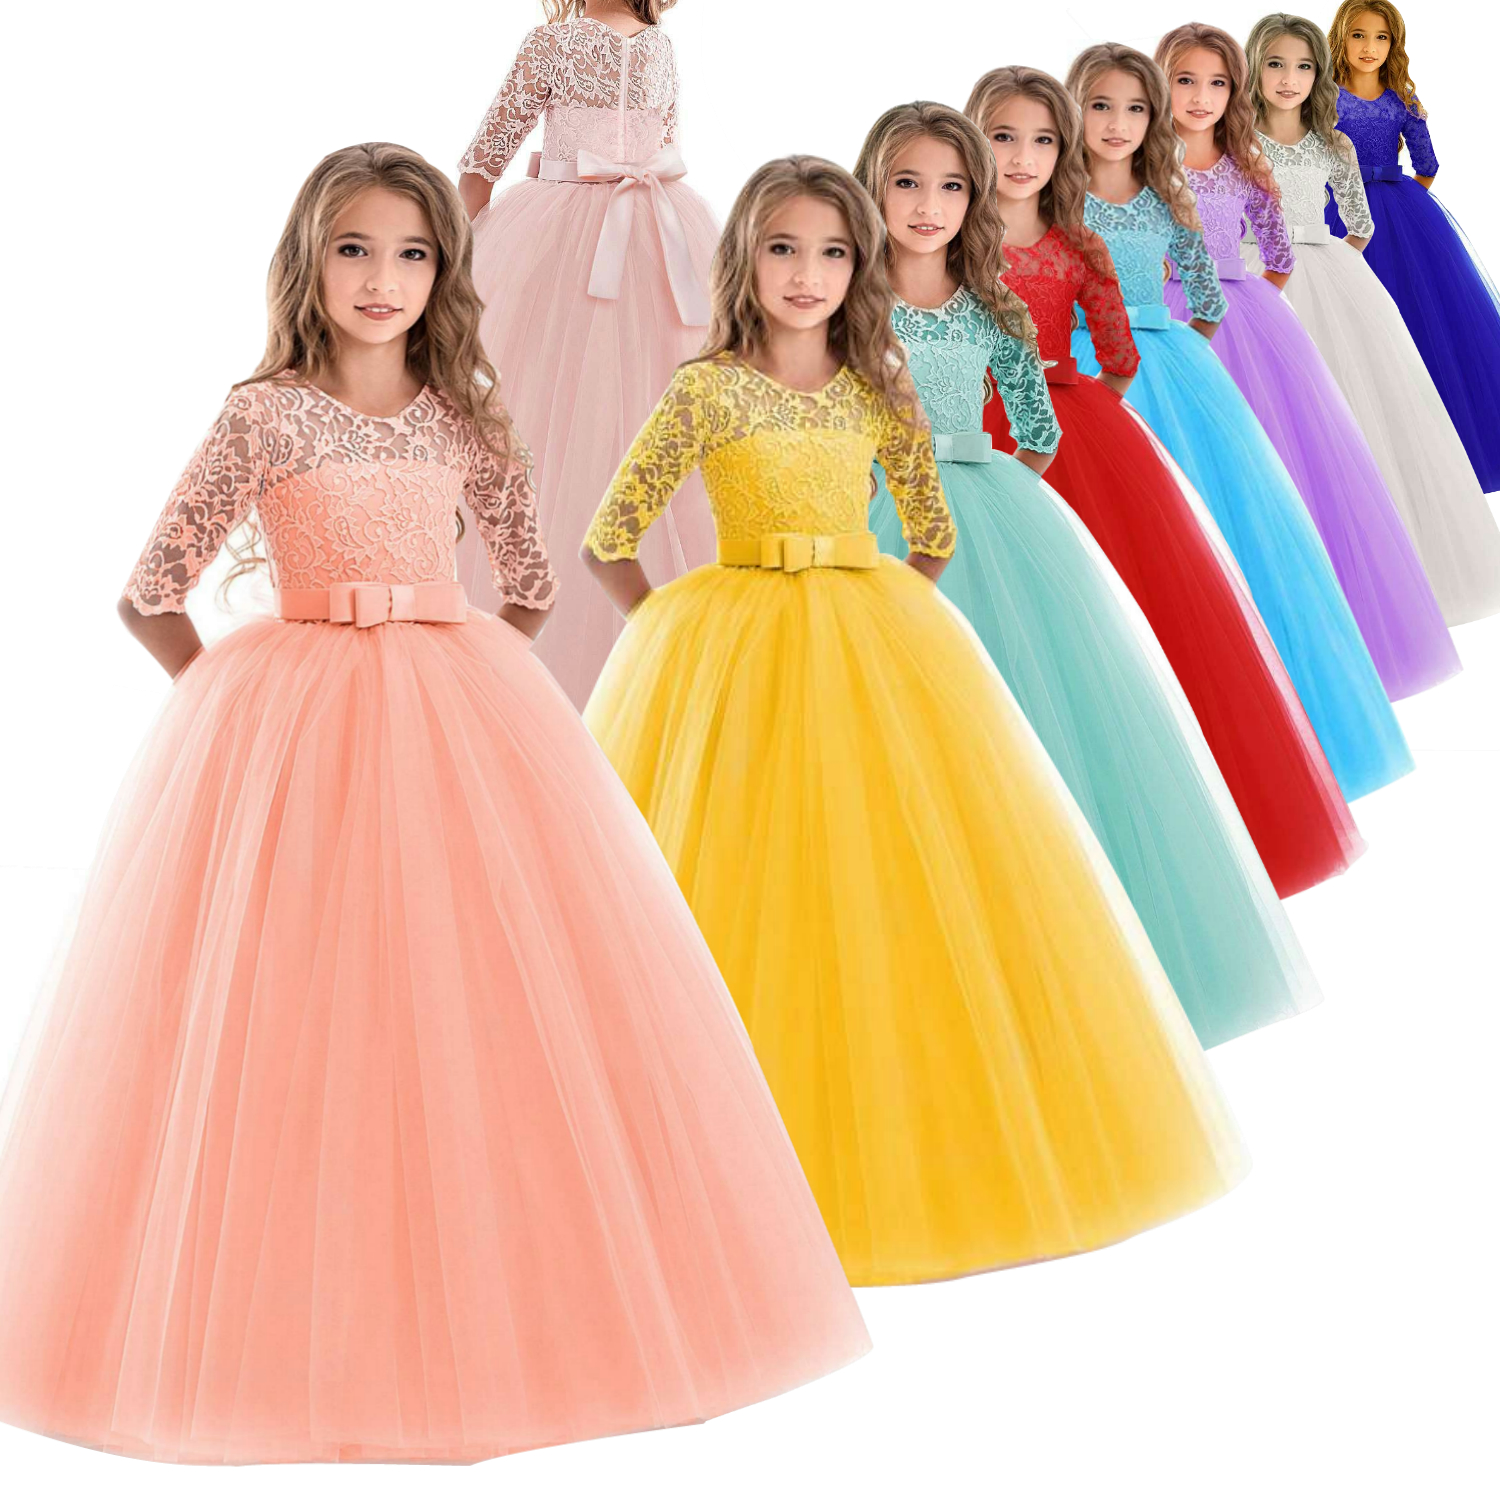 Hot Sales 3-14 Years Kids Party Dresses 2019 New Design Long Sleeves Flower Girl Dress For Weddings Children Princess Ball Gowns